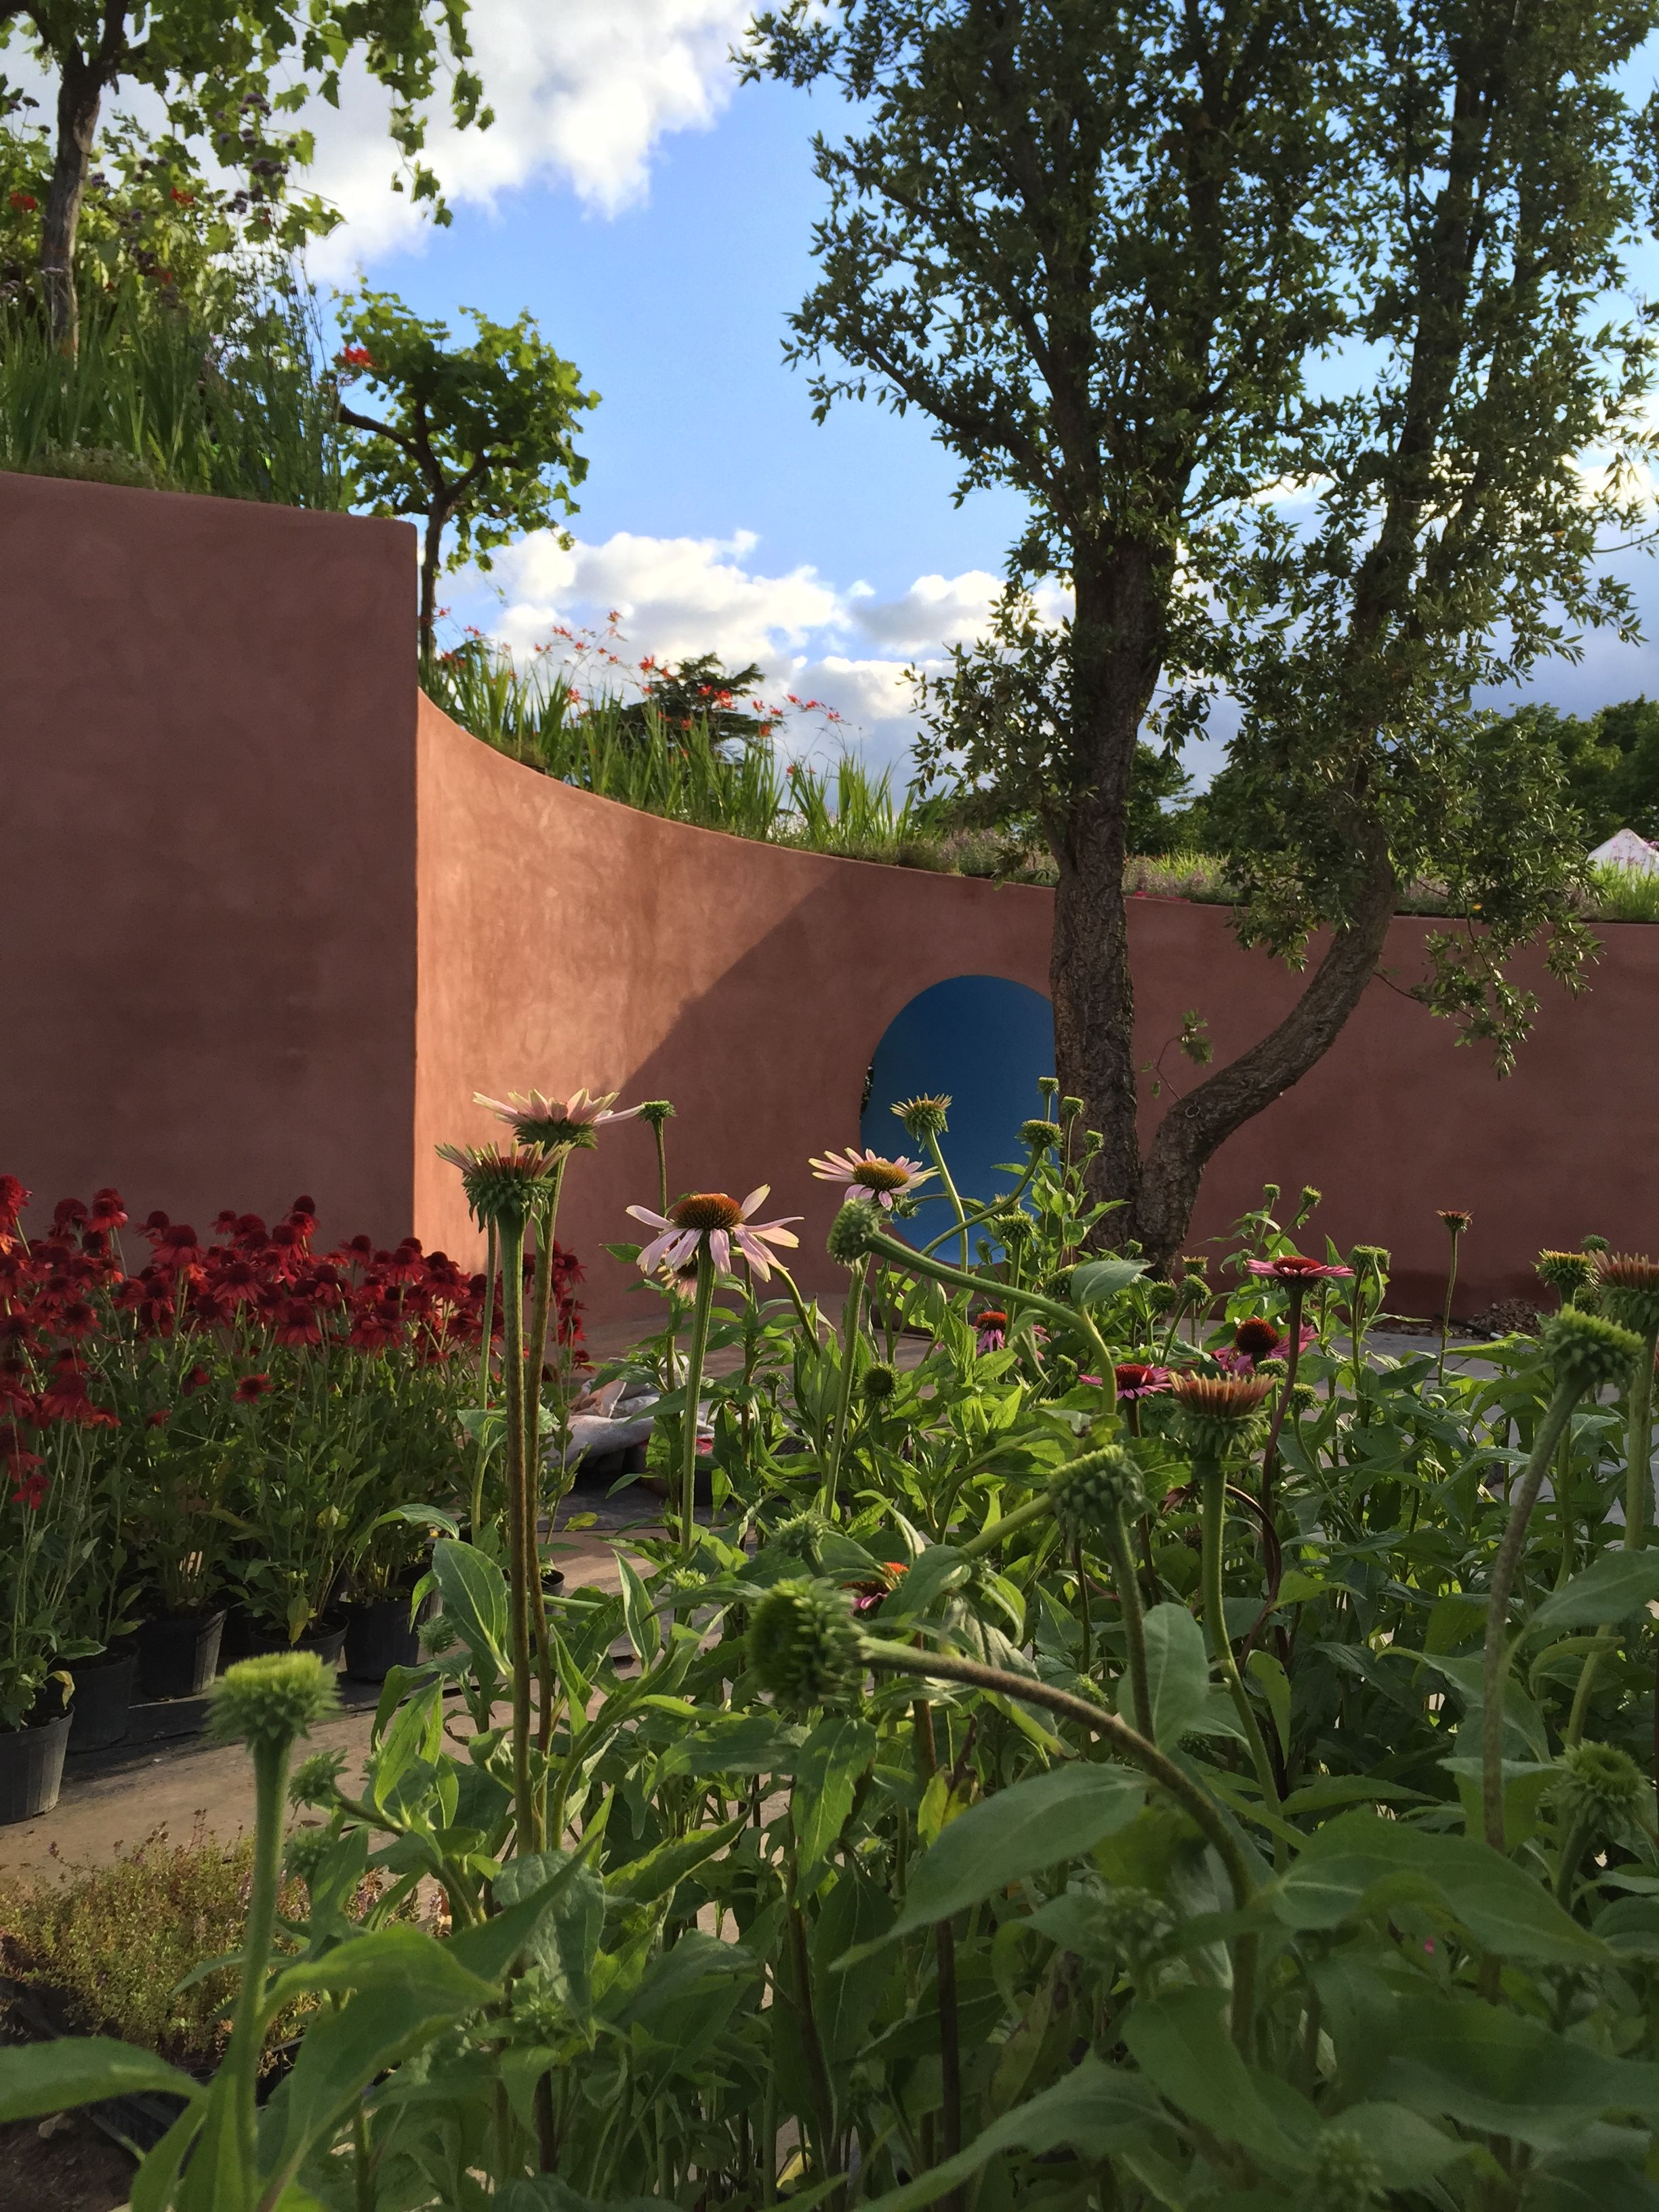 Studio Passerotti - The circle of life - Show Garden at Hampton Court Flower Show 2015. www.studiopasserotti.com